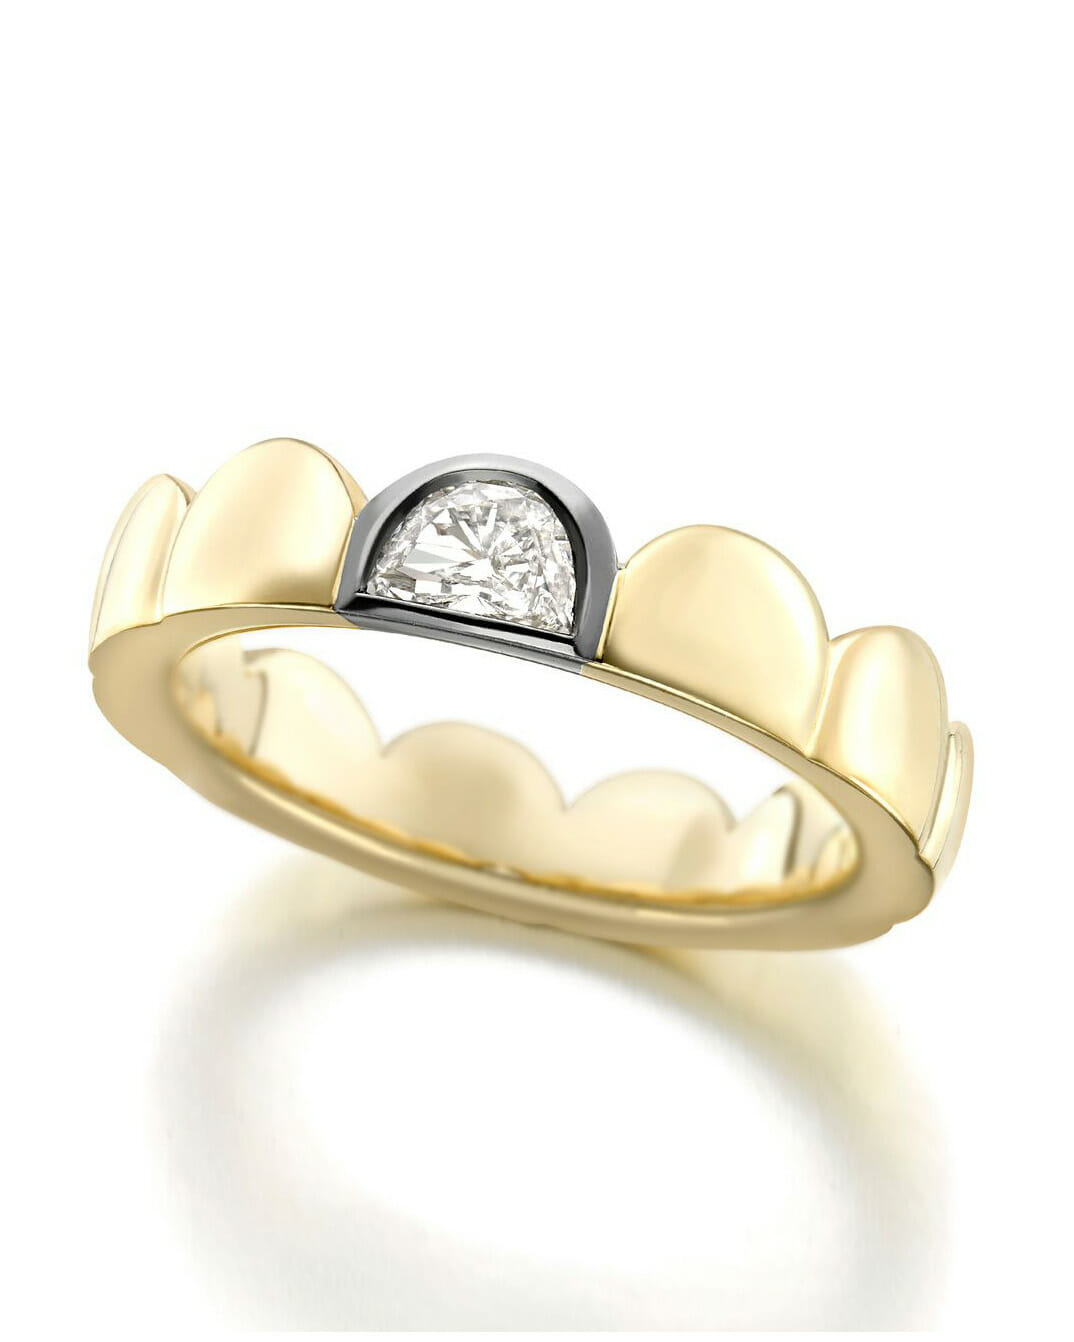 Wedding Band for every budget mixed metal ring